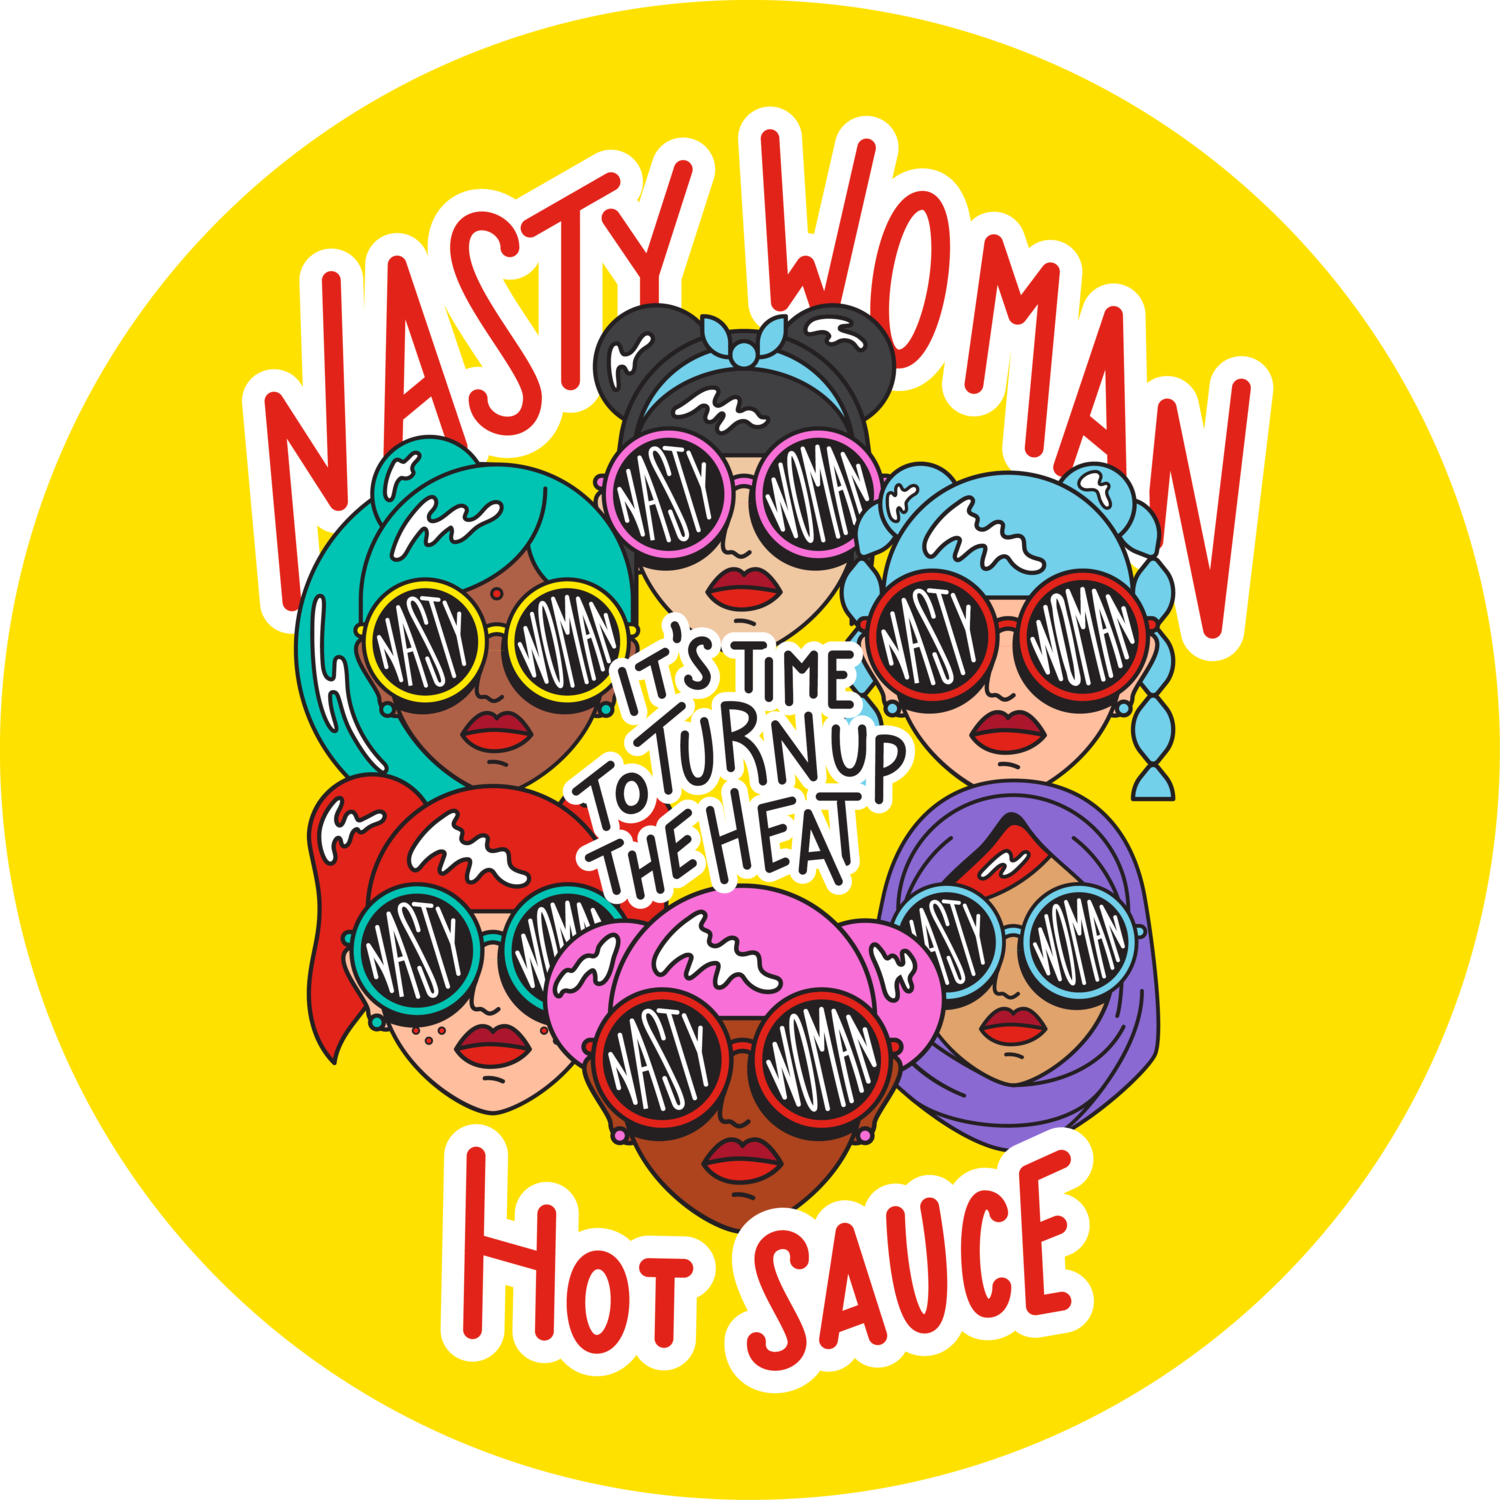 Nasty Woman Hot Sauce